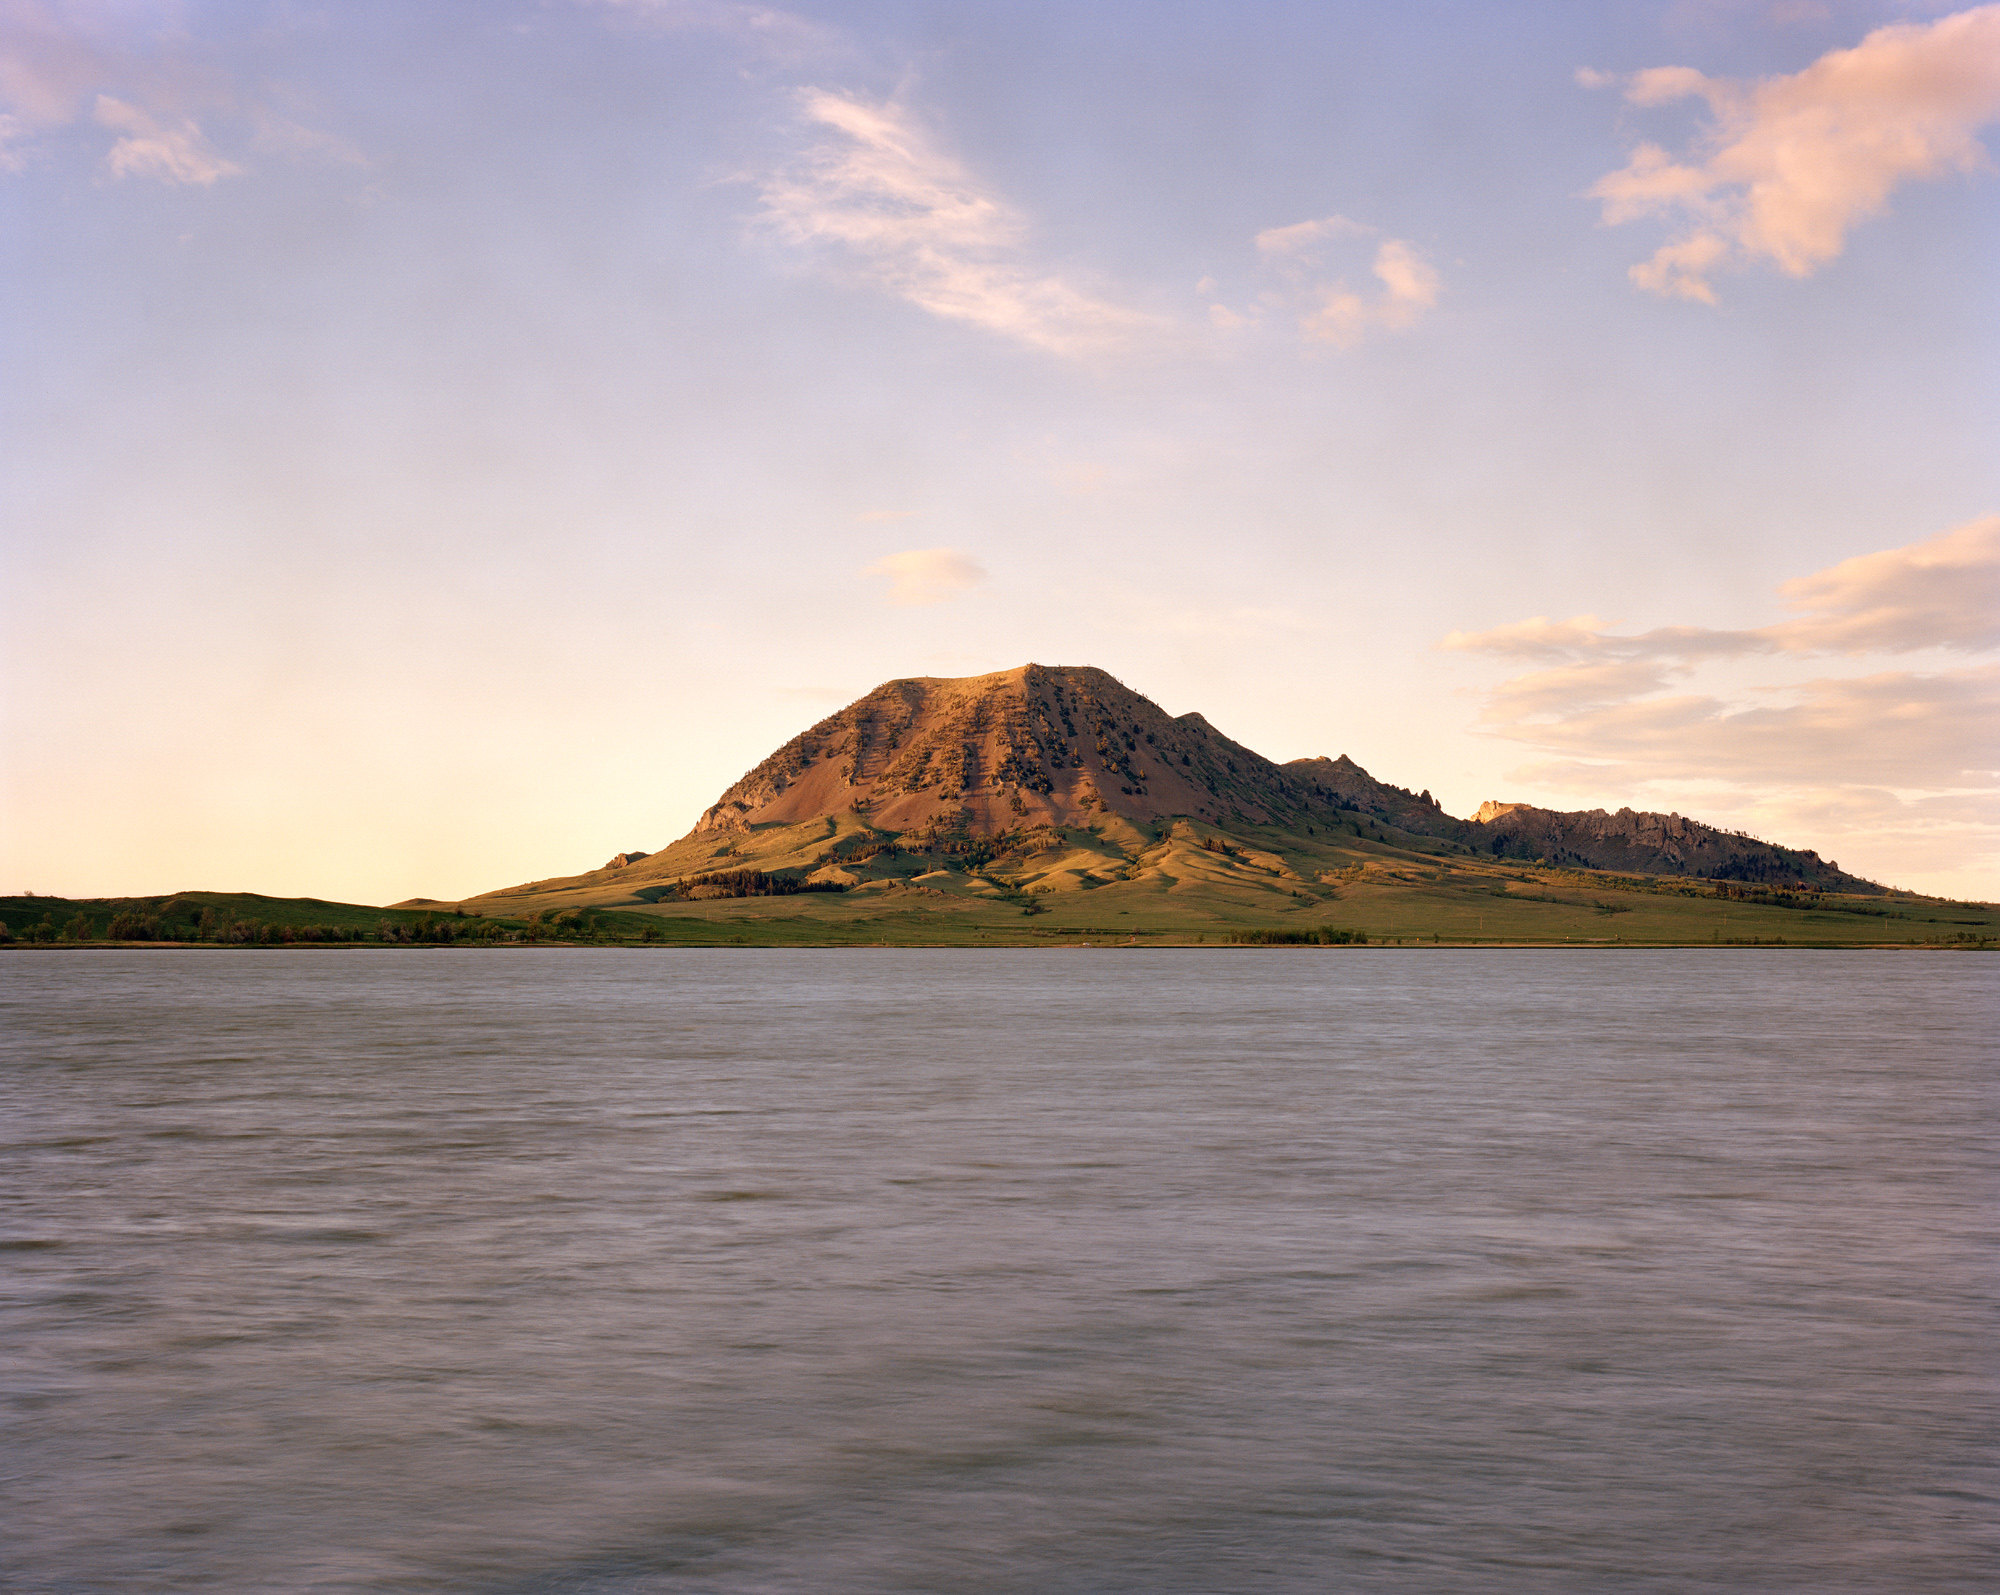 """Matò Pahà, Bear Butte State Park, Meade County, SDThe sacred mountain of Bear Butte in South Dakota is a holy site for many American Indian tribes. The Lakota people call itMatò Pahàor """"Bear Mountain,"""" a reference to the fact that its profile resembles a sleeping bear. Revered leaders like Red Cloud, Crazy Horse, and Sitting Bull all visited this mountain to pray, and it continues to be a place of pilgrimage for Indians throughout the United States and Canada. Vision quests, sweat lodges, and other ceremonies are frequently held on the mountain."""